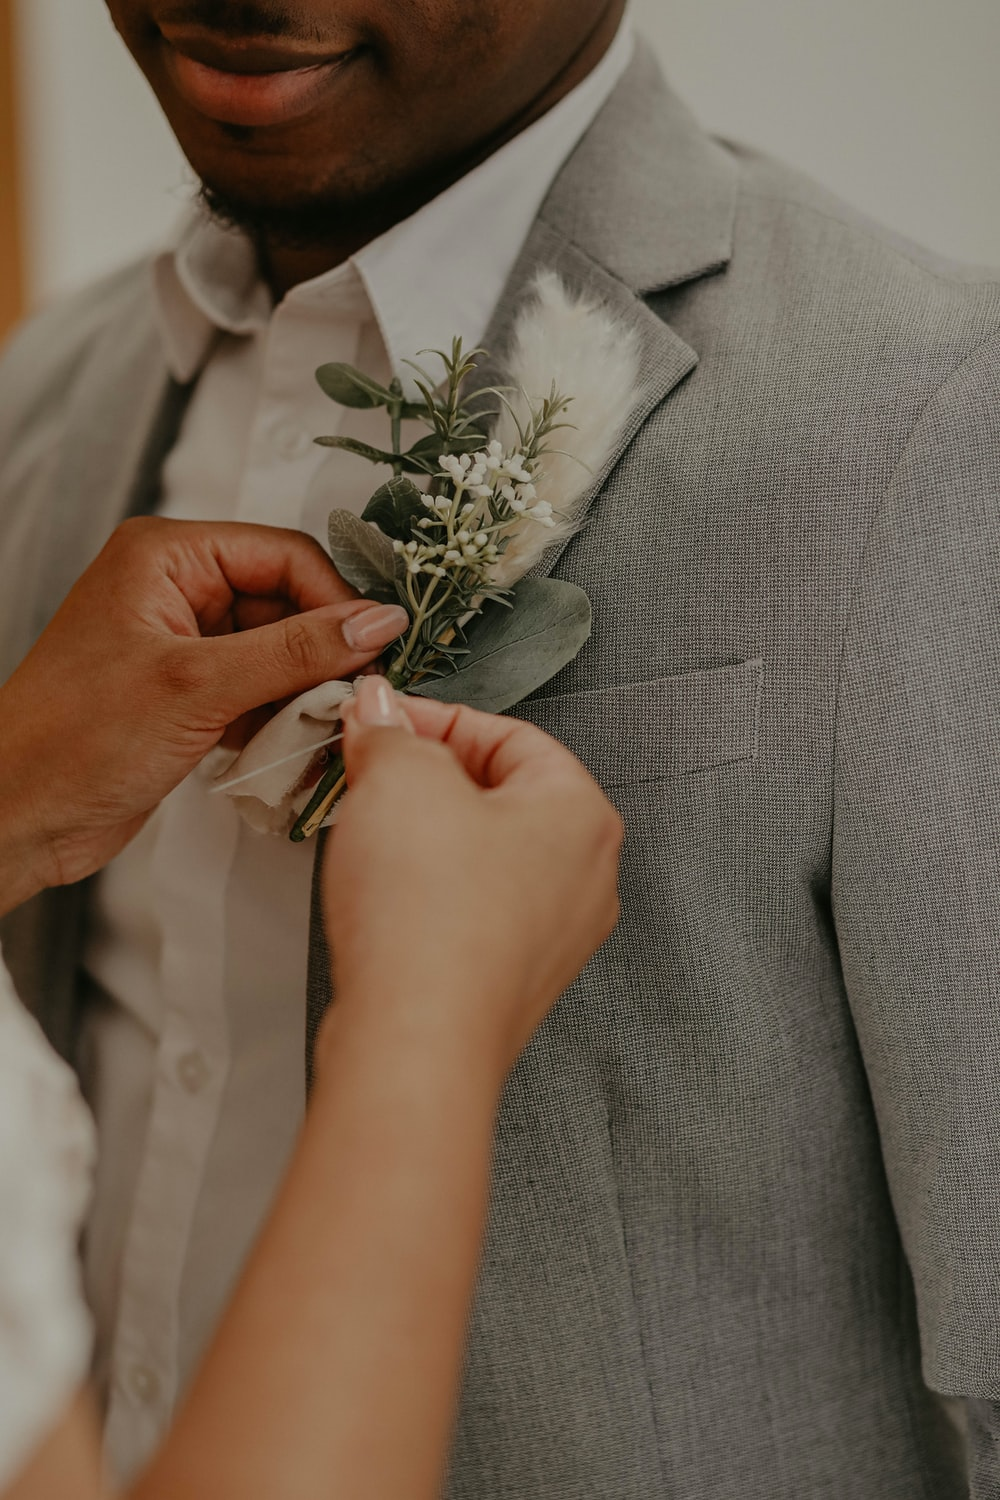 man in gray suit holding white rose